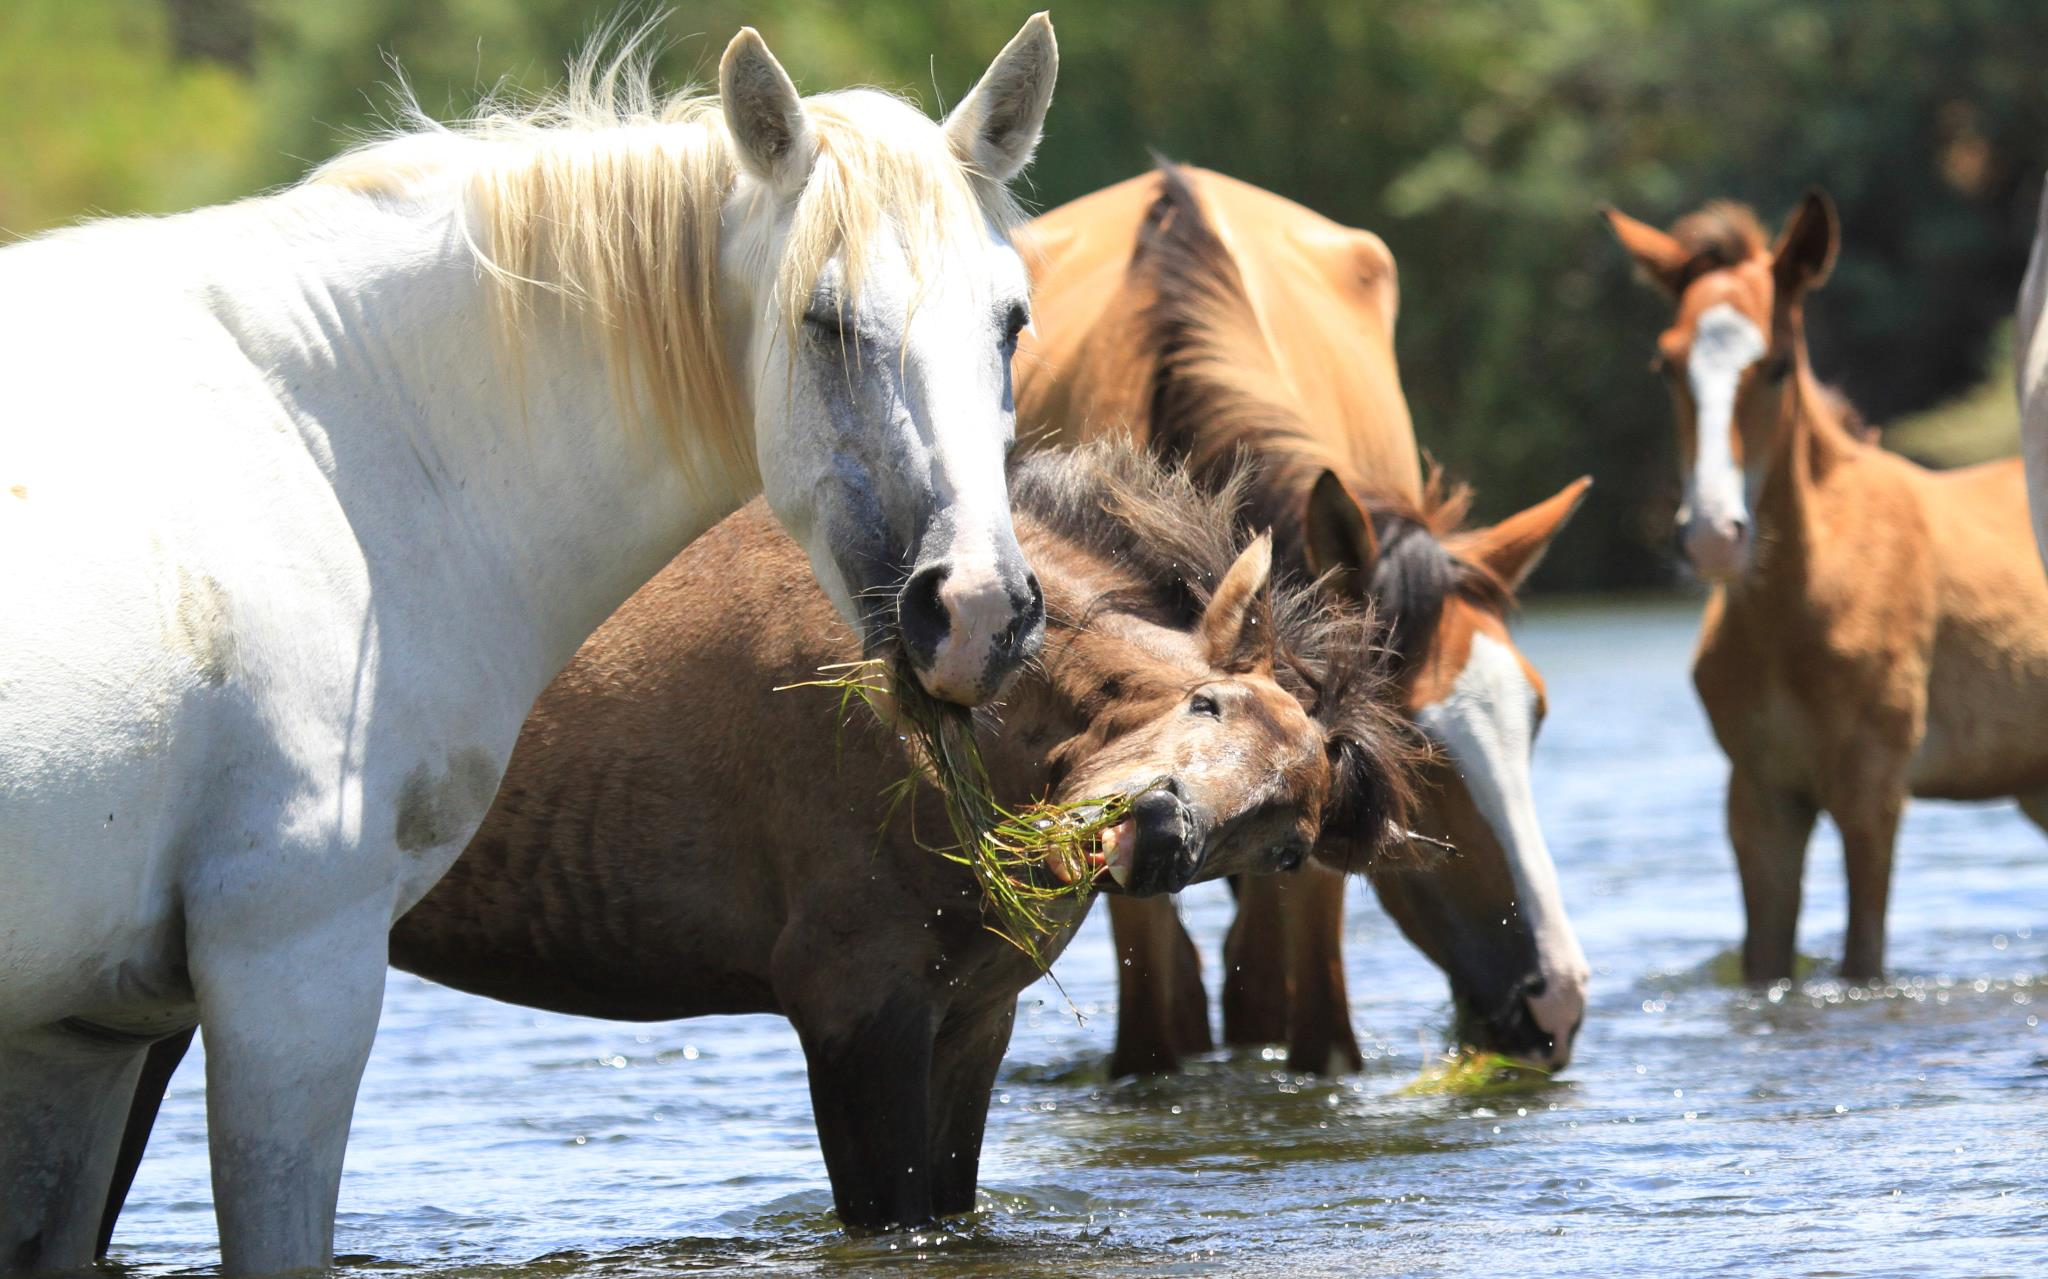 My fav of the week - our precious Arizona Salt River Wild Horses